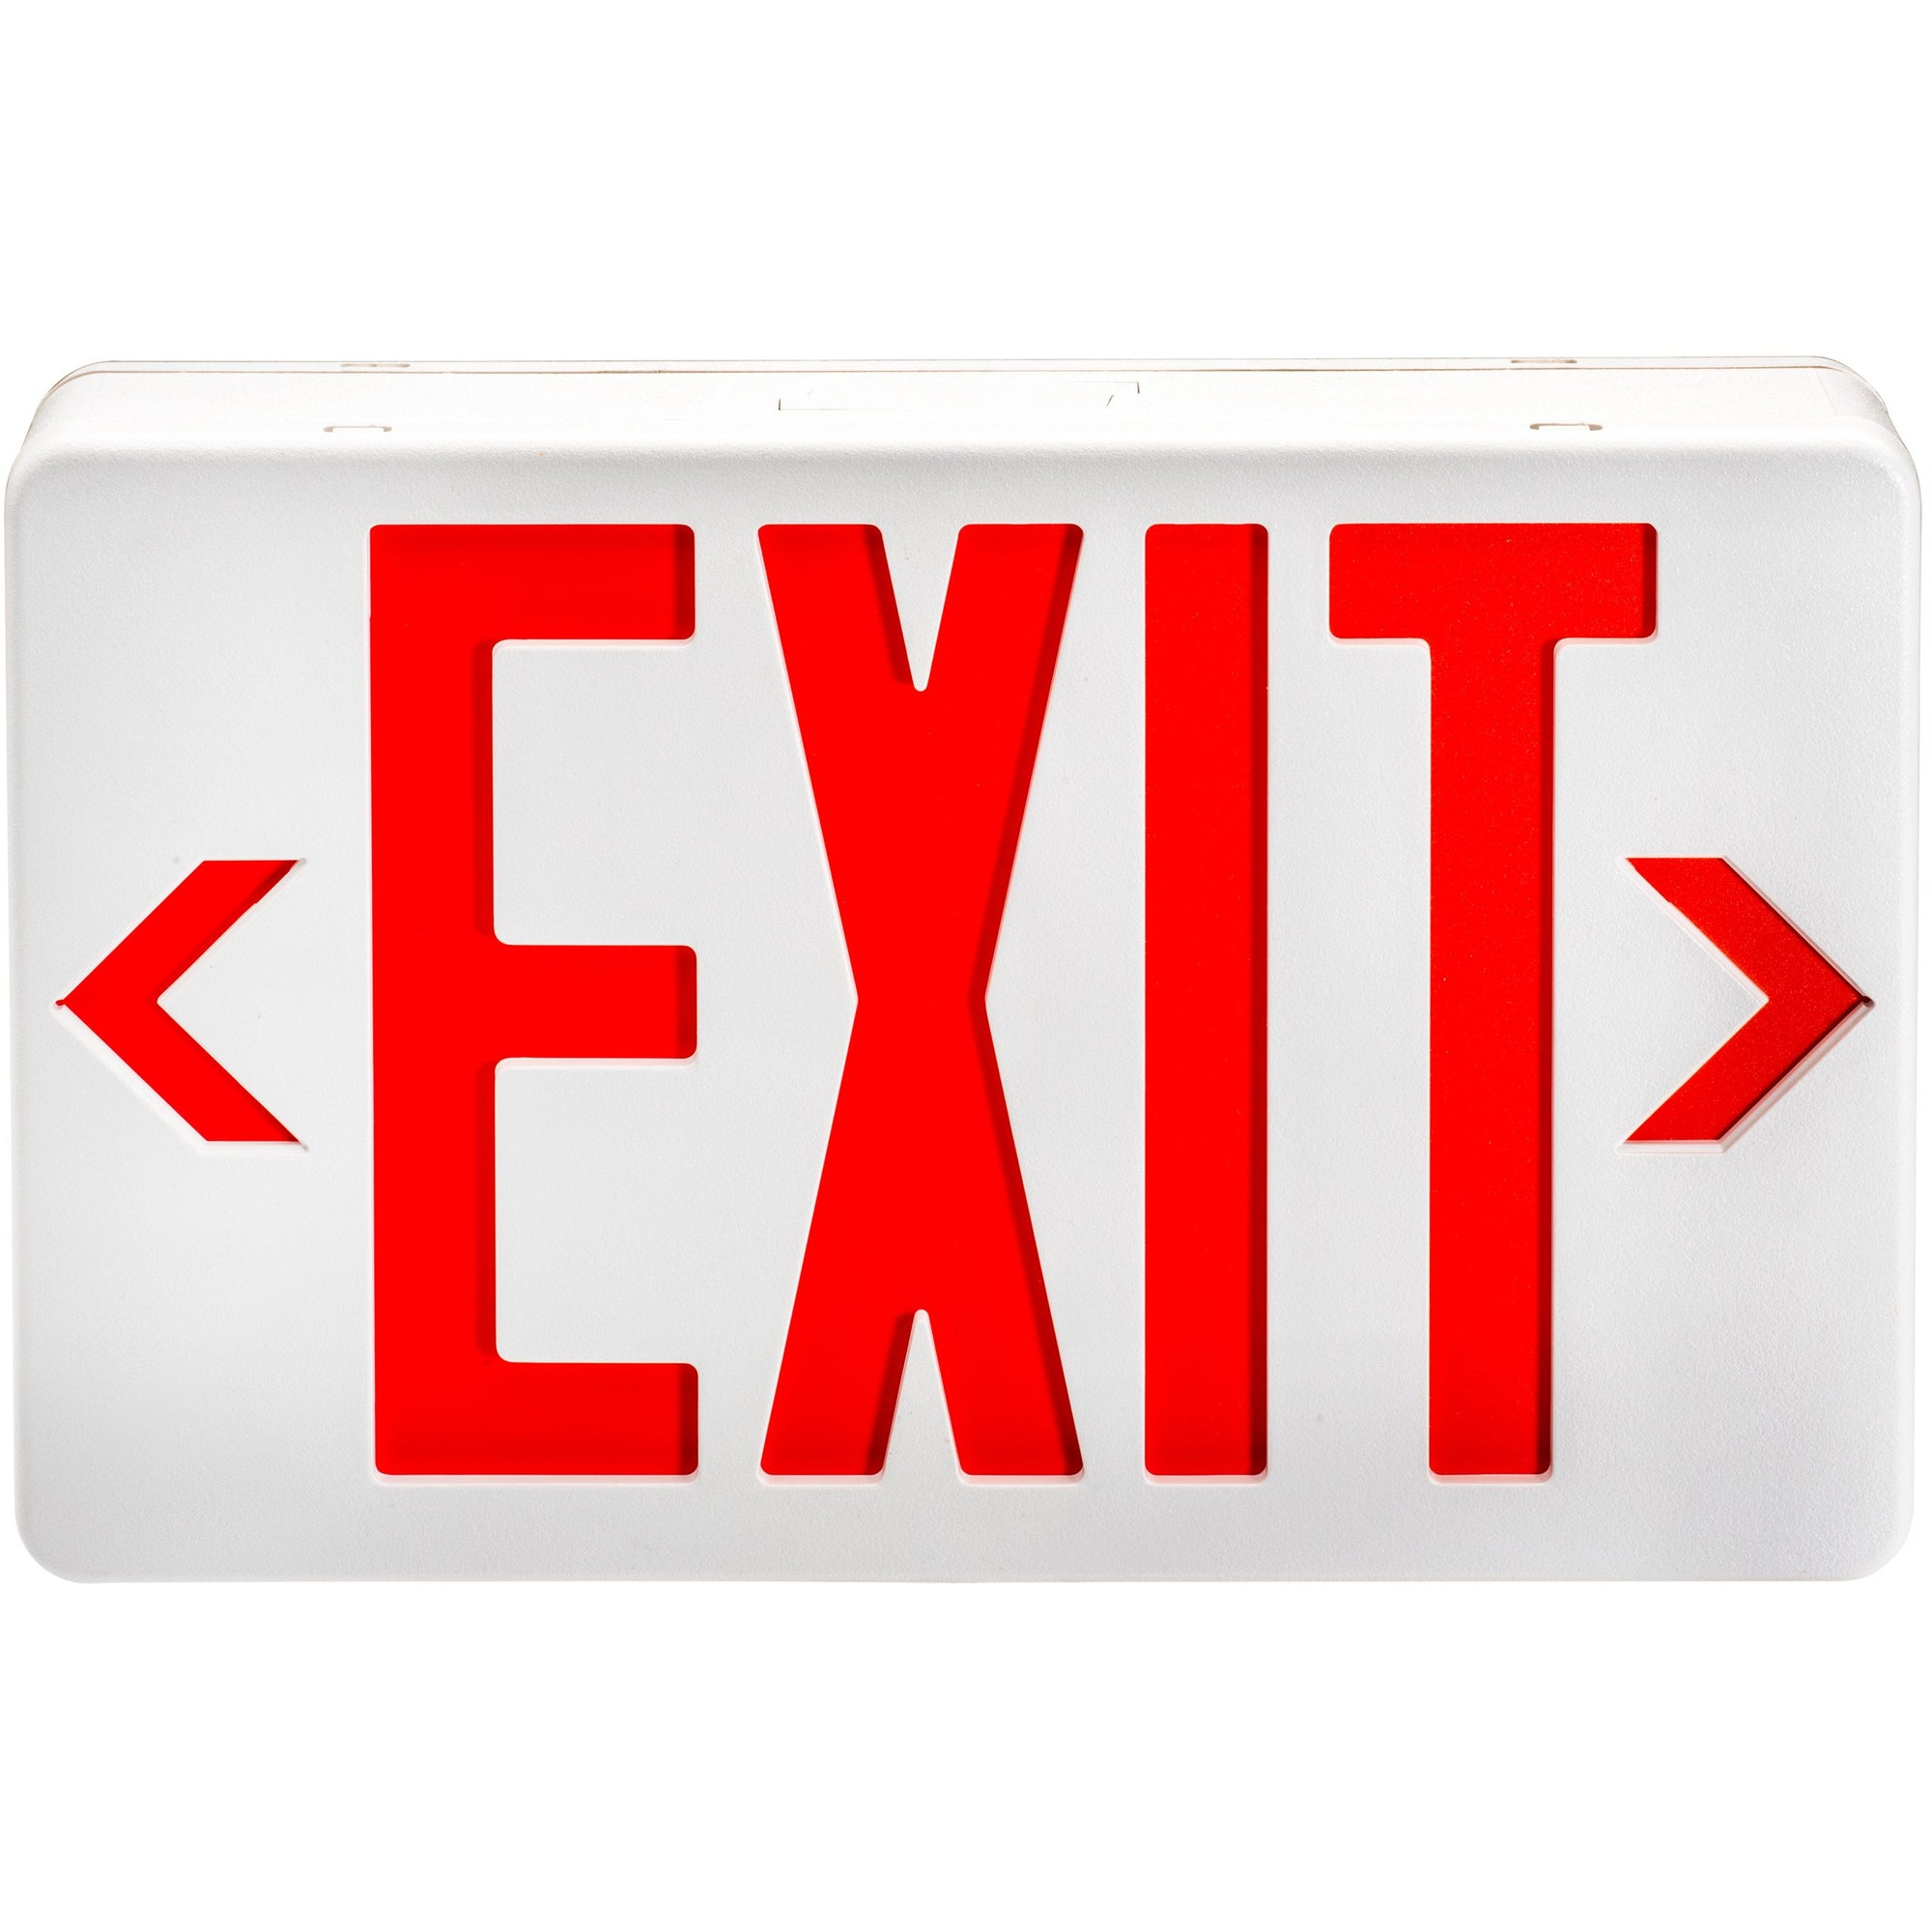 WH LED EXIT SIGN W/BATTERY BACK UP RED - CommerciaLight Distributors